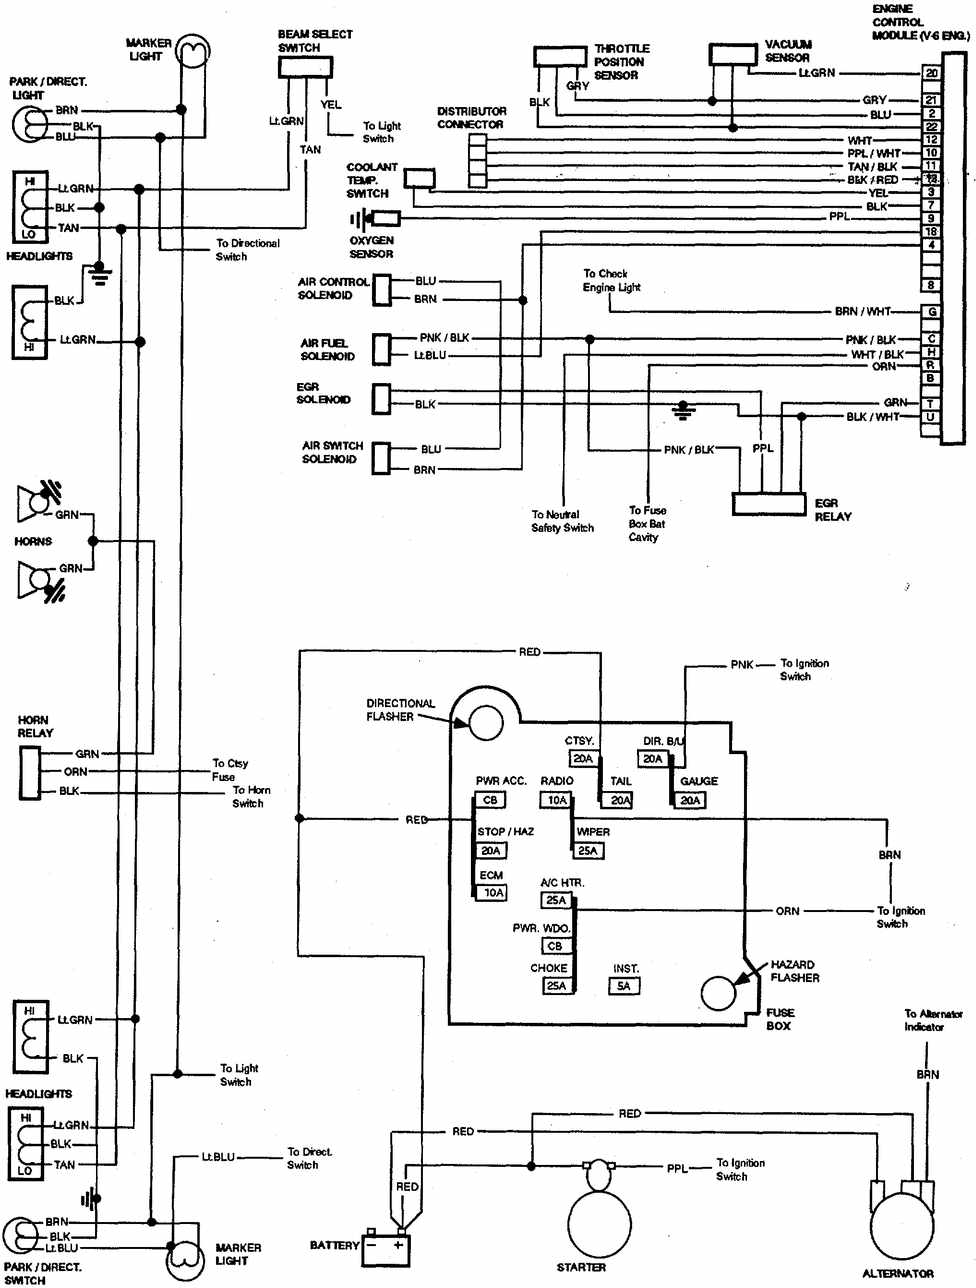 Diagram Of Hyster Starter Schematics Data Wiring Diagrams Clark Forklift Chevrolet V8 Trucks 1981 1987 Electrical All About